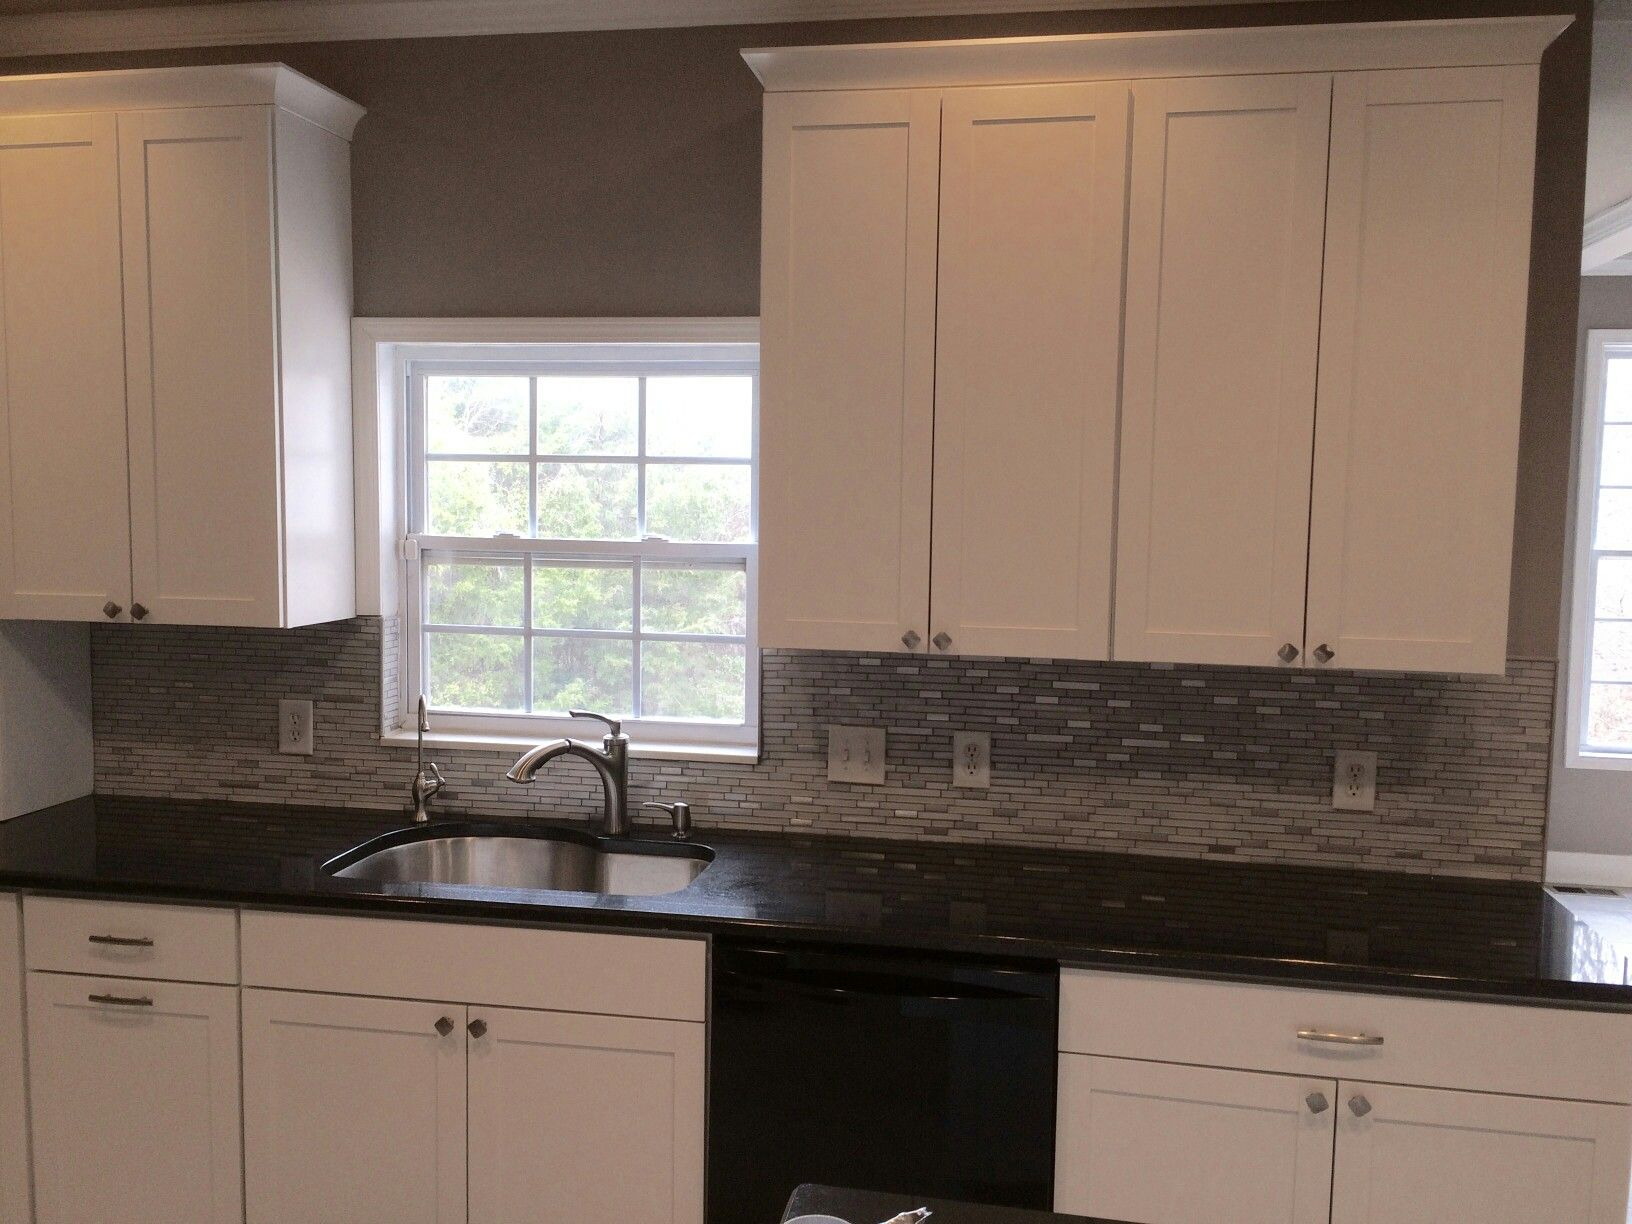 Aristokraft Cabinetryu0027s Brellin PureStyle White Kitchen Designed By Tina  Holland At Our Hoitt Avenue Kitchen And